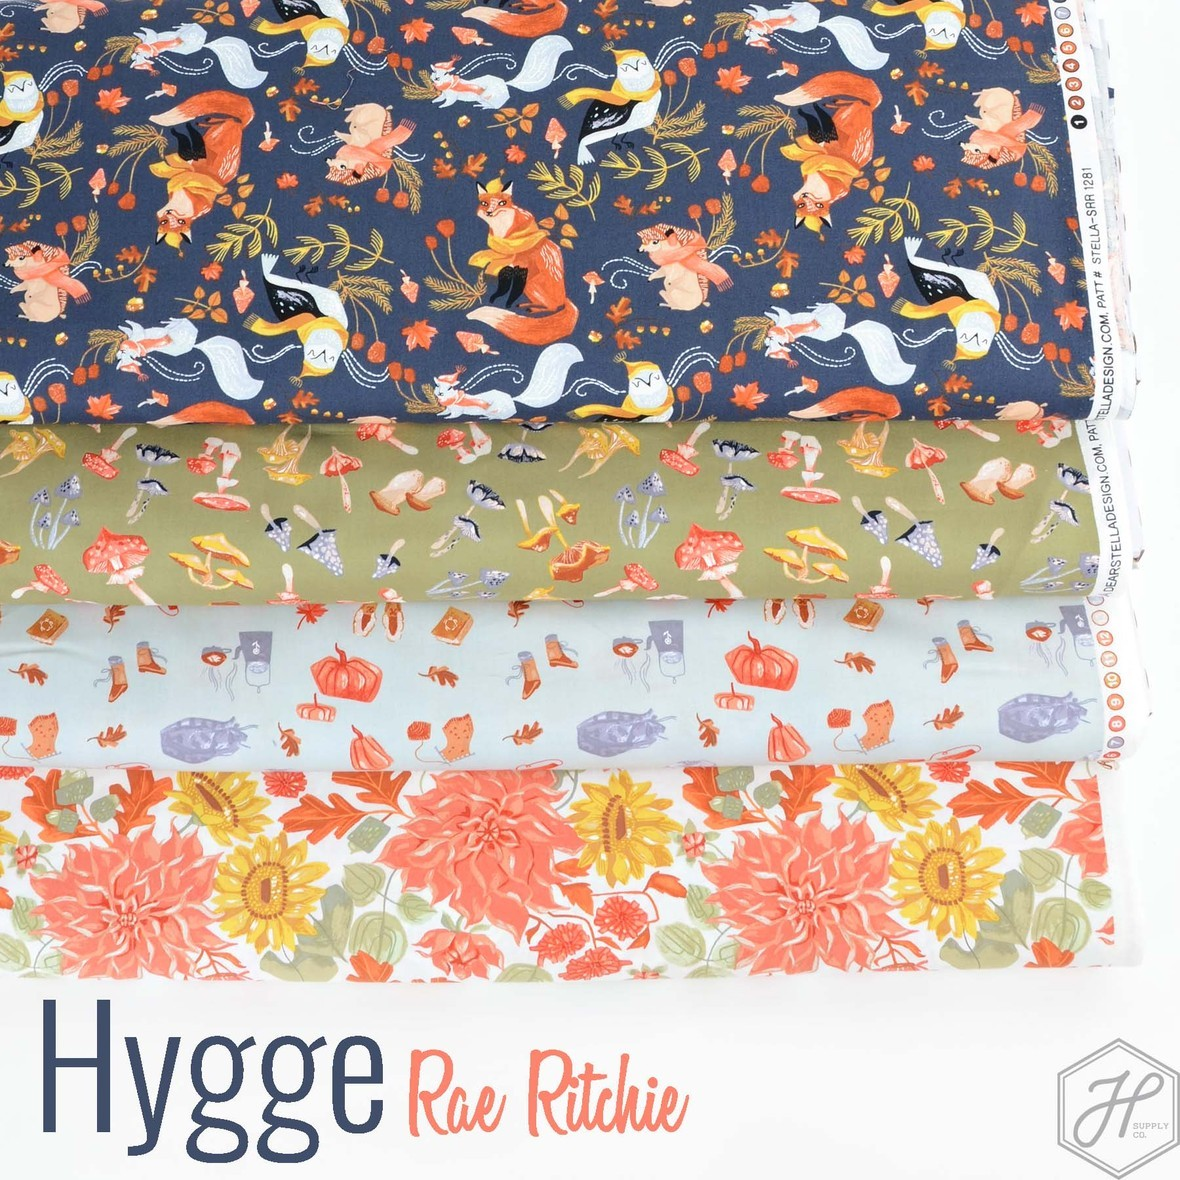 Hygge Fabric Rae Ritchie for Dear Stella at Hawthorne Supply Co